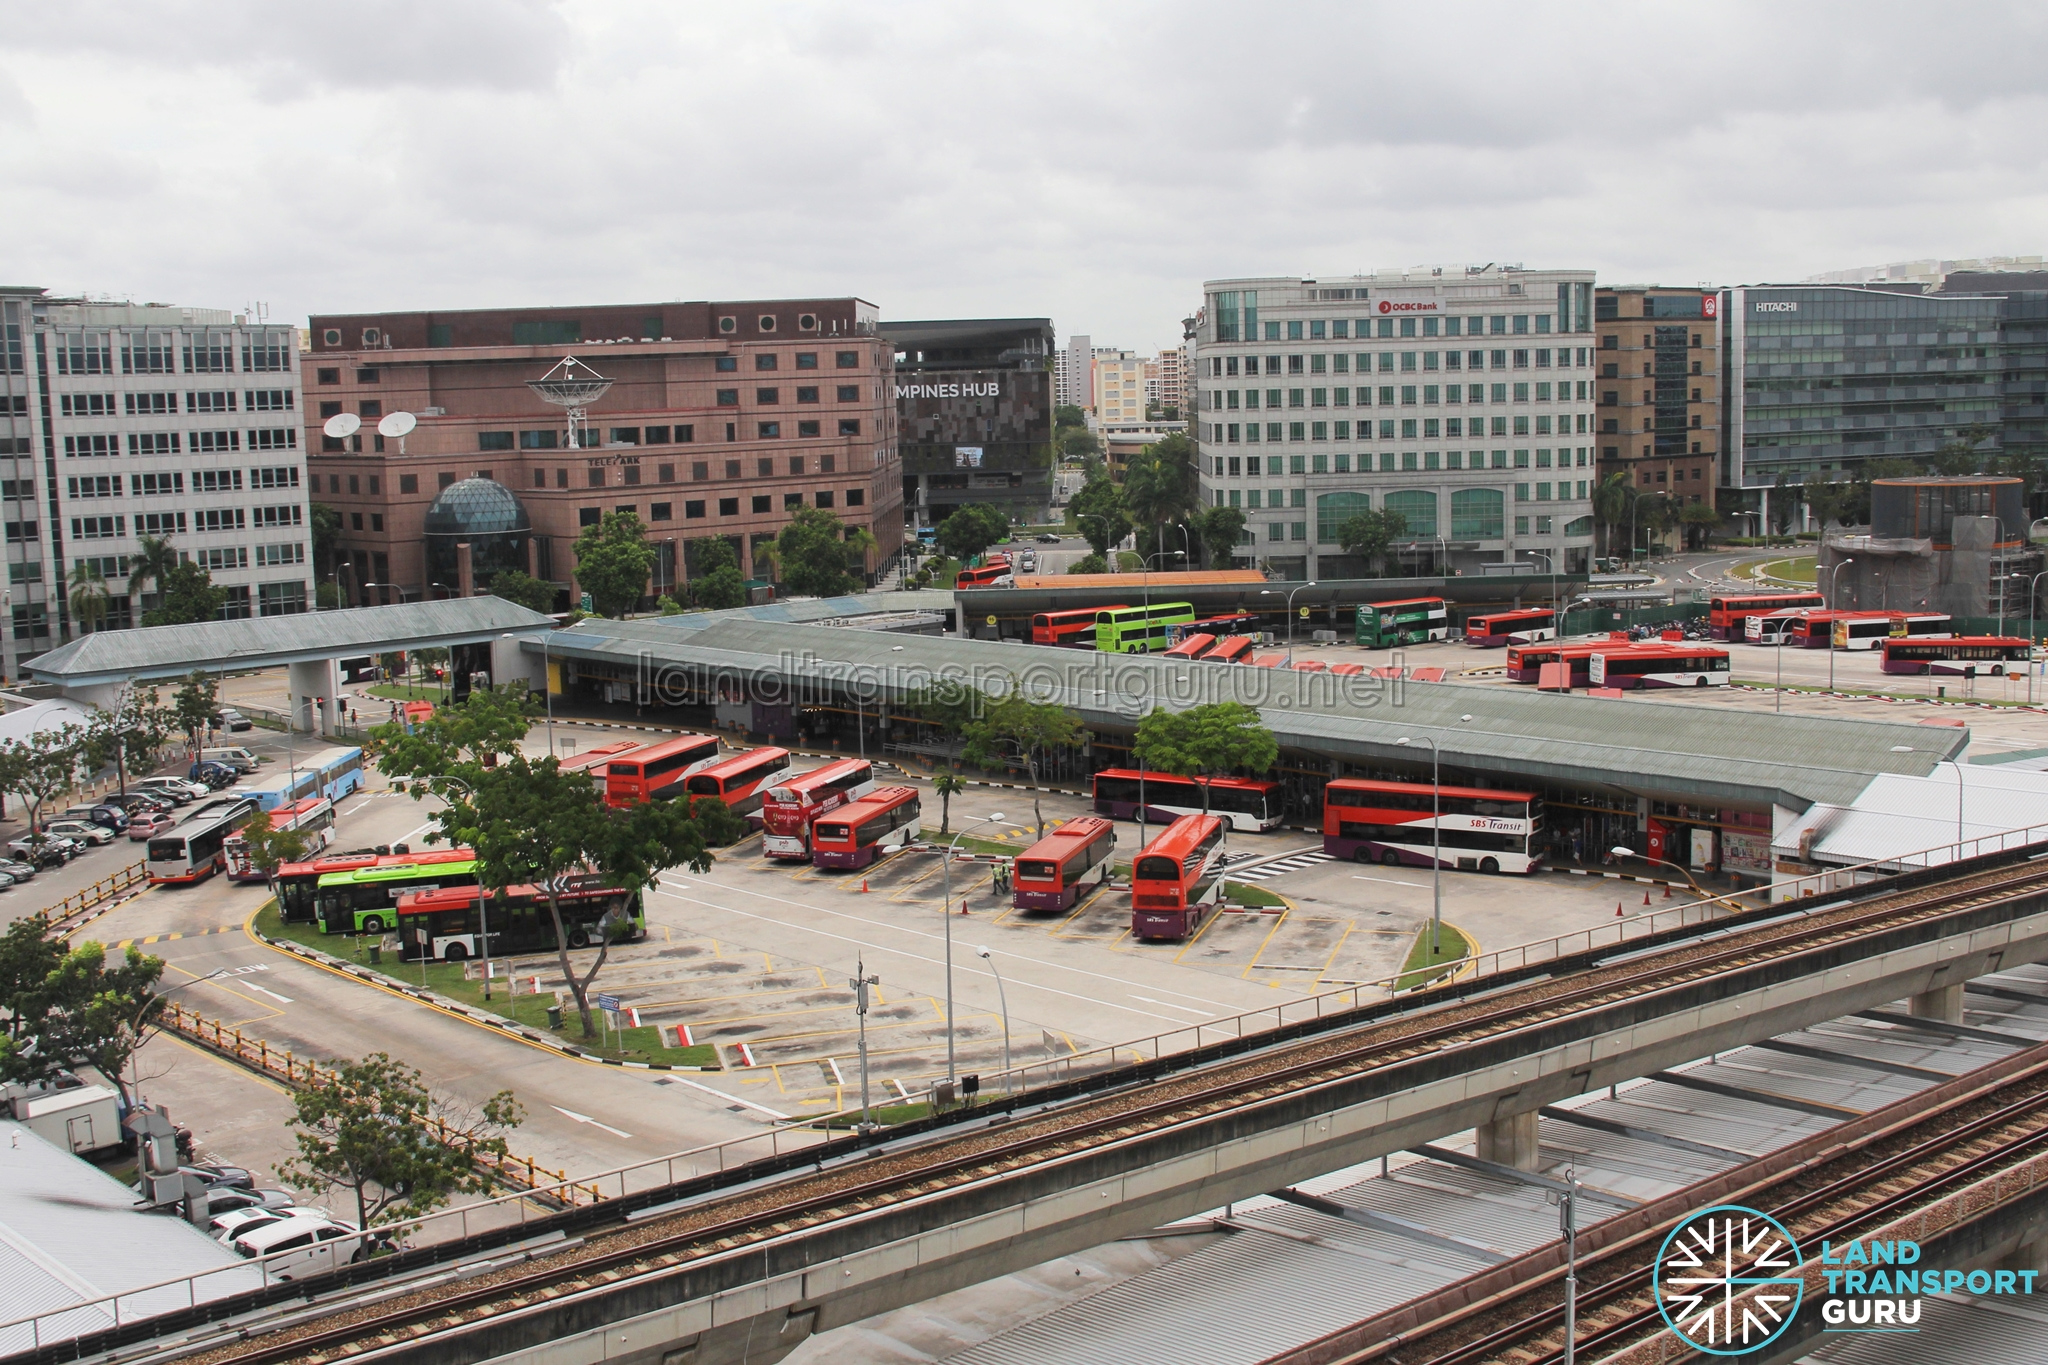 The interchange can be put into operation in 2016 at 41 km of the Leningrad highway 46